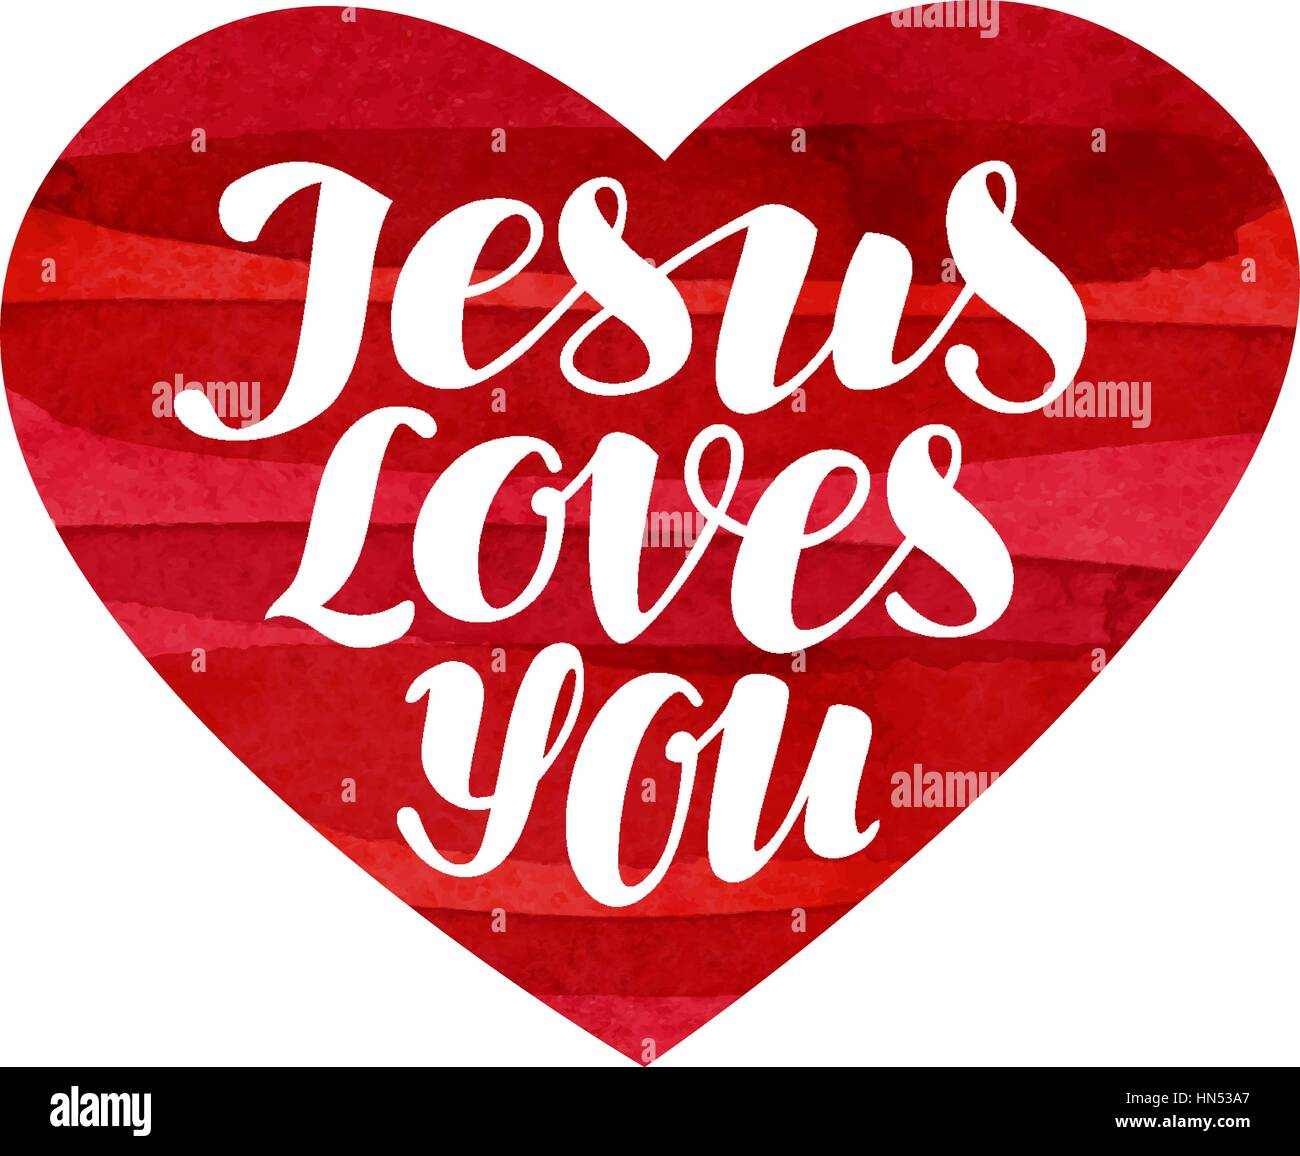 Jesus Loves You Stock Vector Images - Alamy